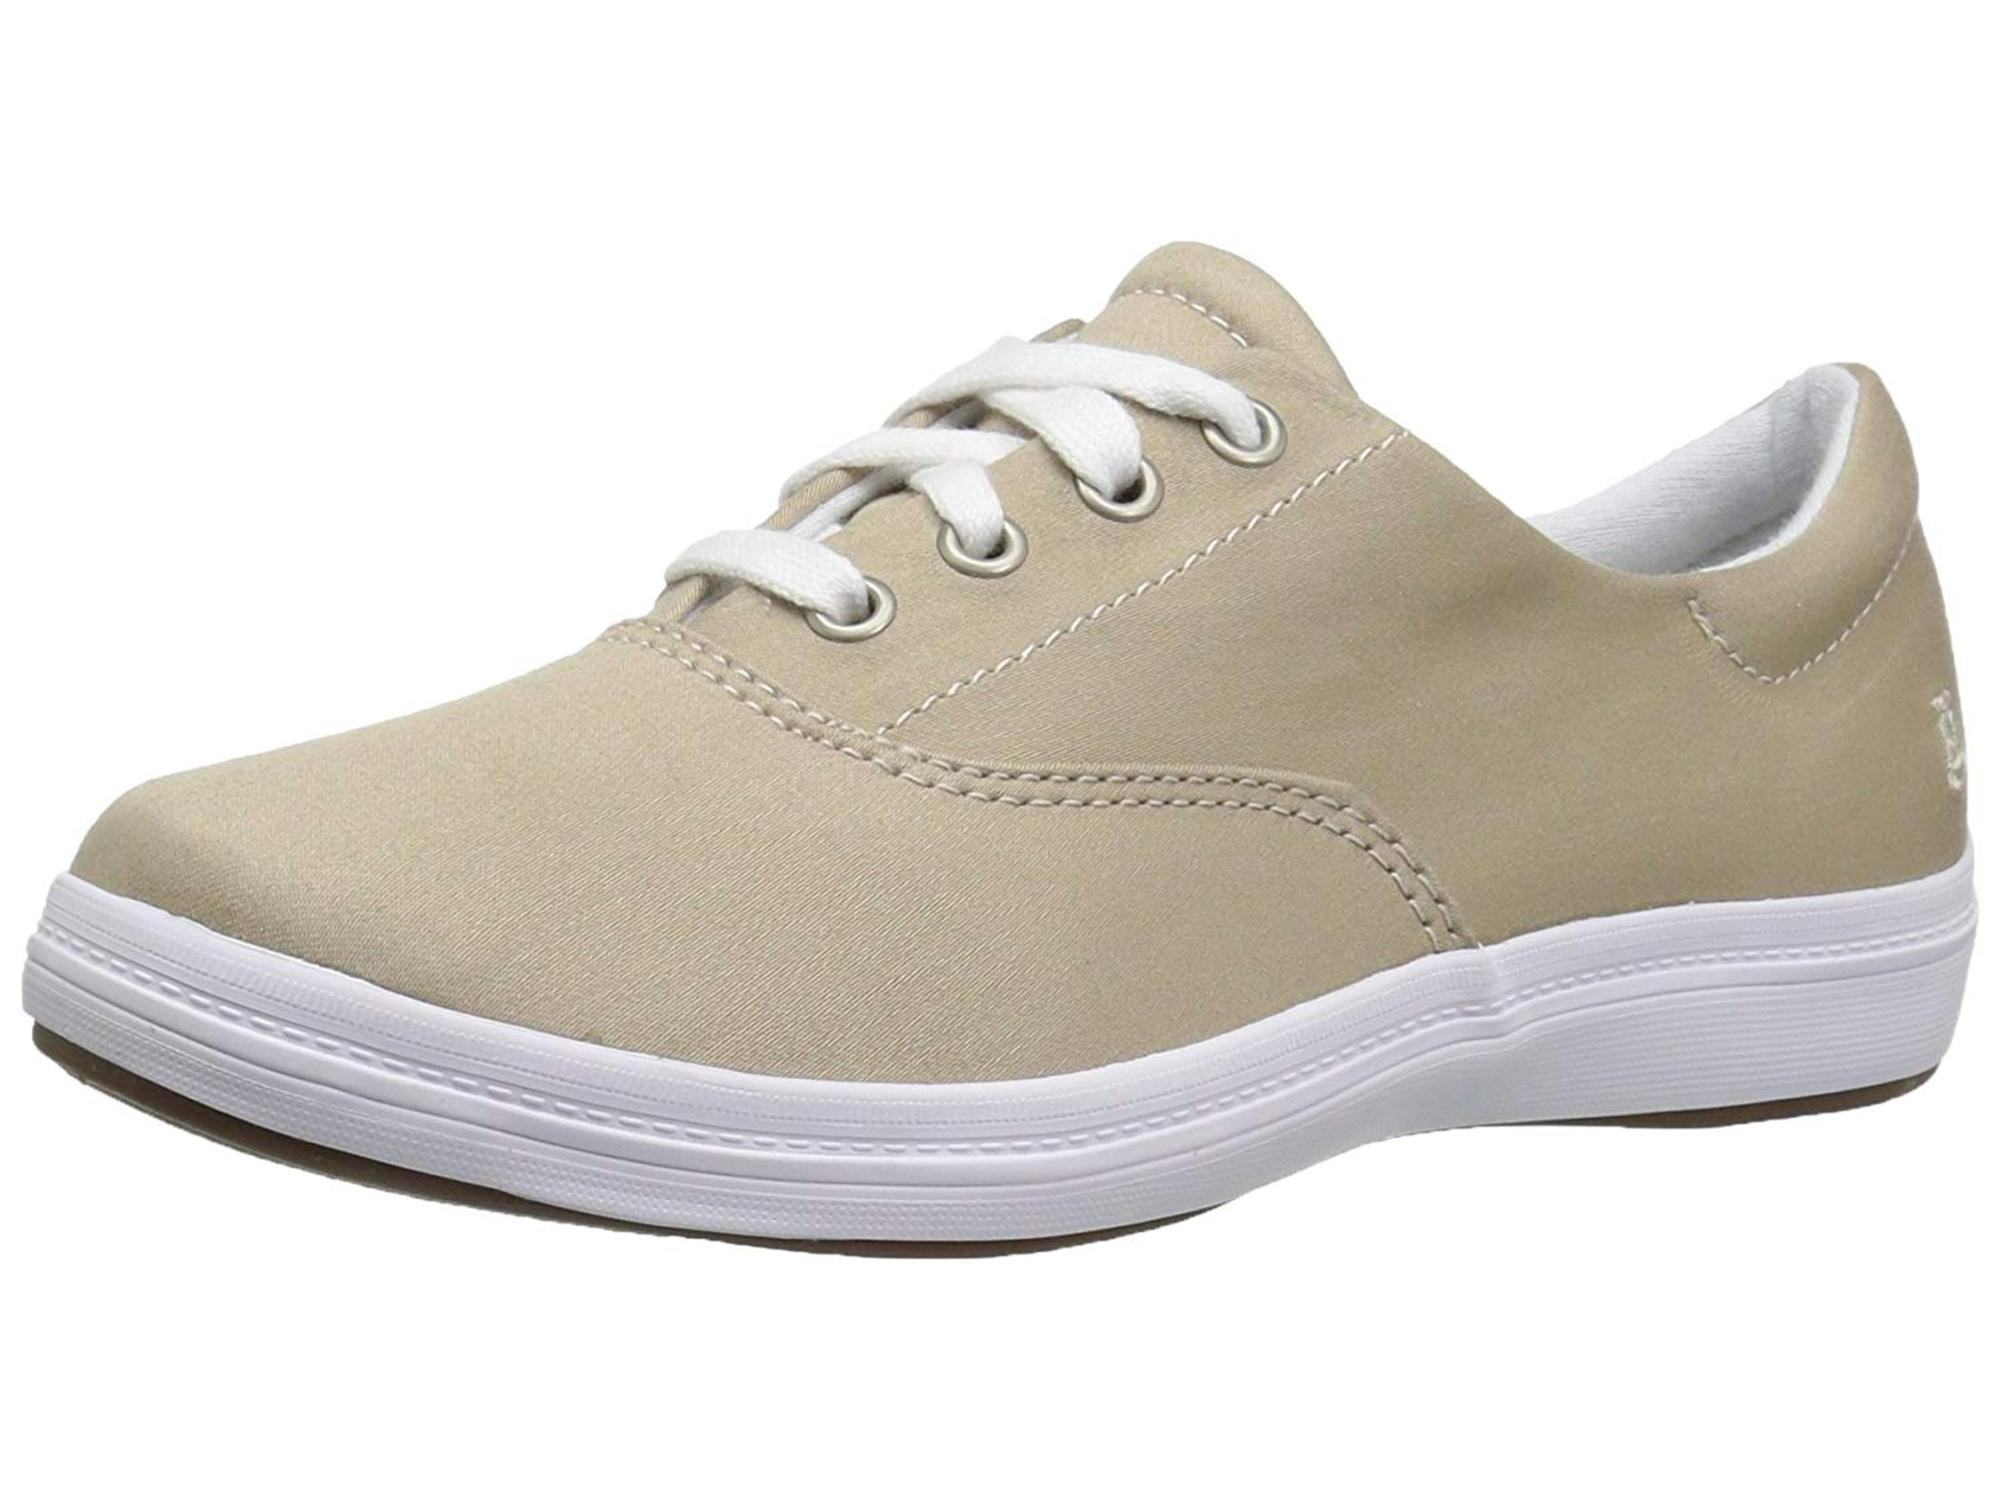 Grasshoppers Womens Janey Ii Low Top Lace Up Fashion Sneakers by Grasshoppers